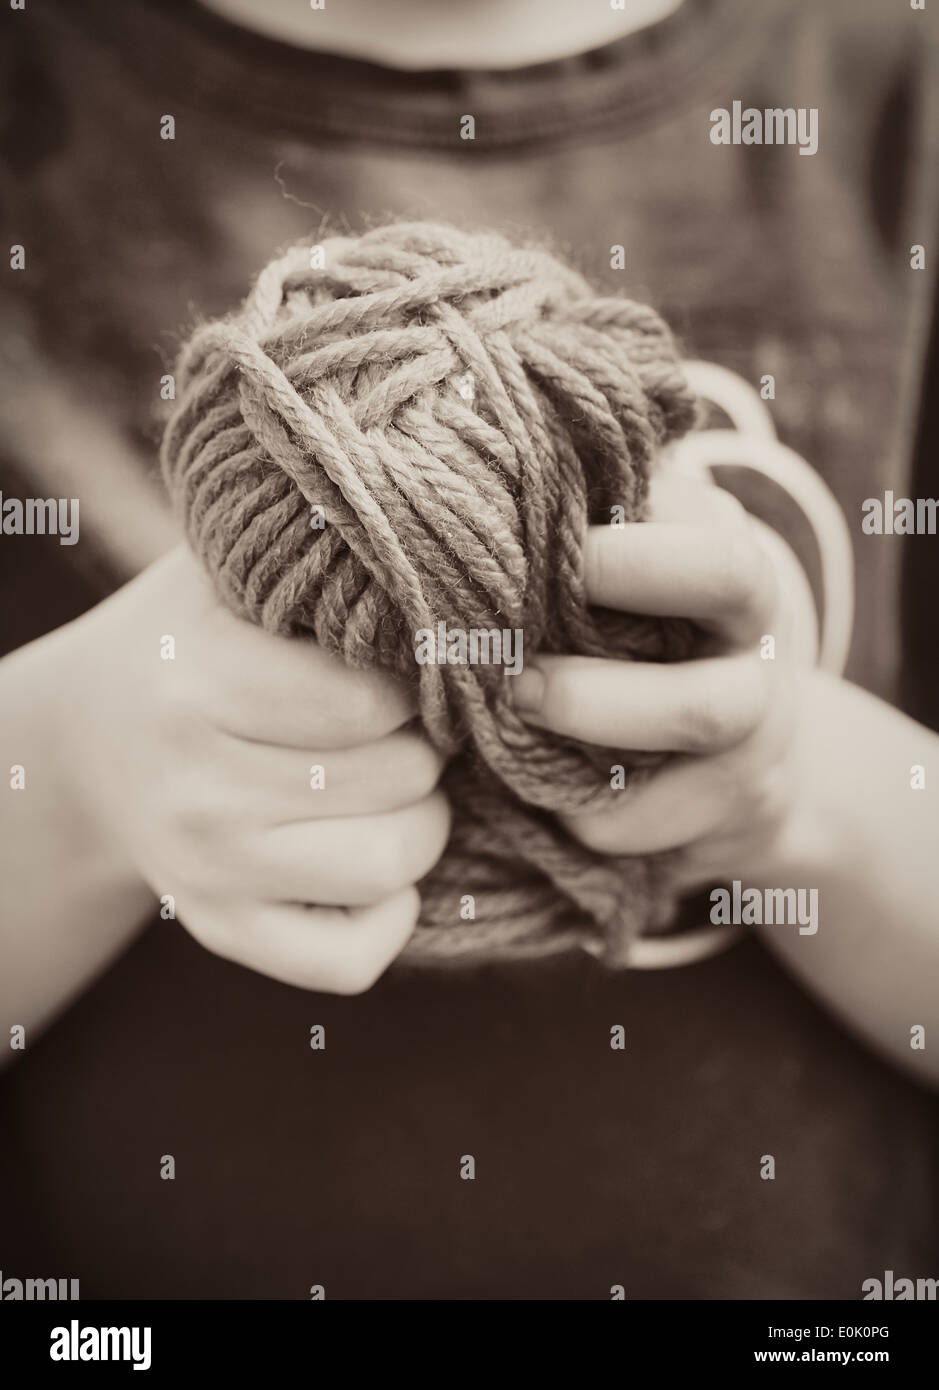 Close up of little girl holding a ball of yarn in her hands Stock Photo